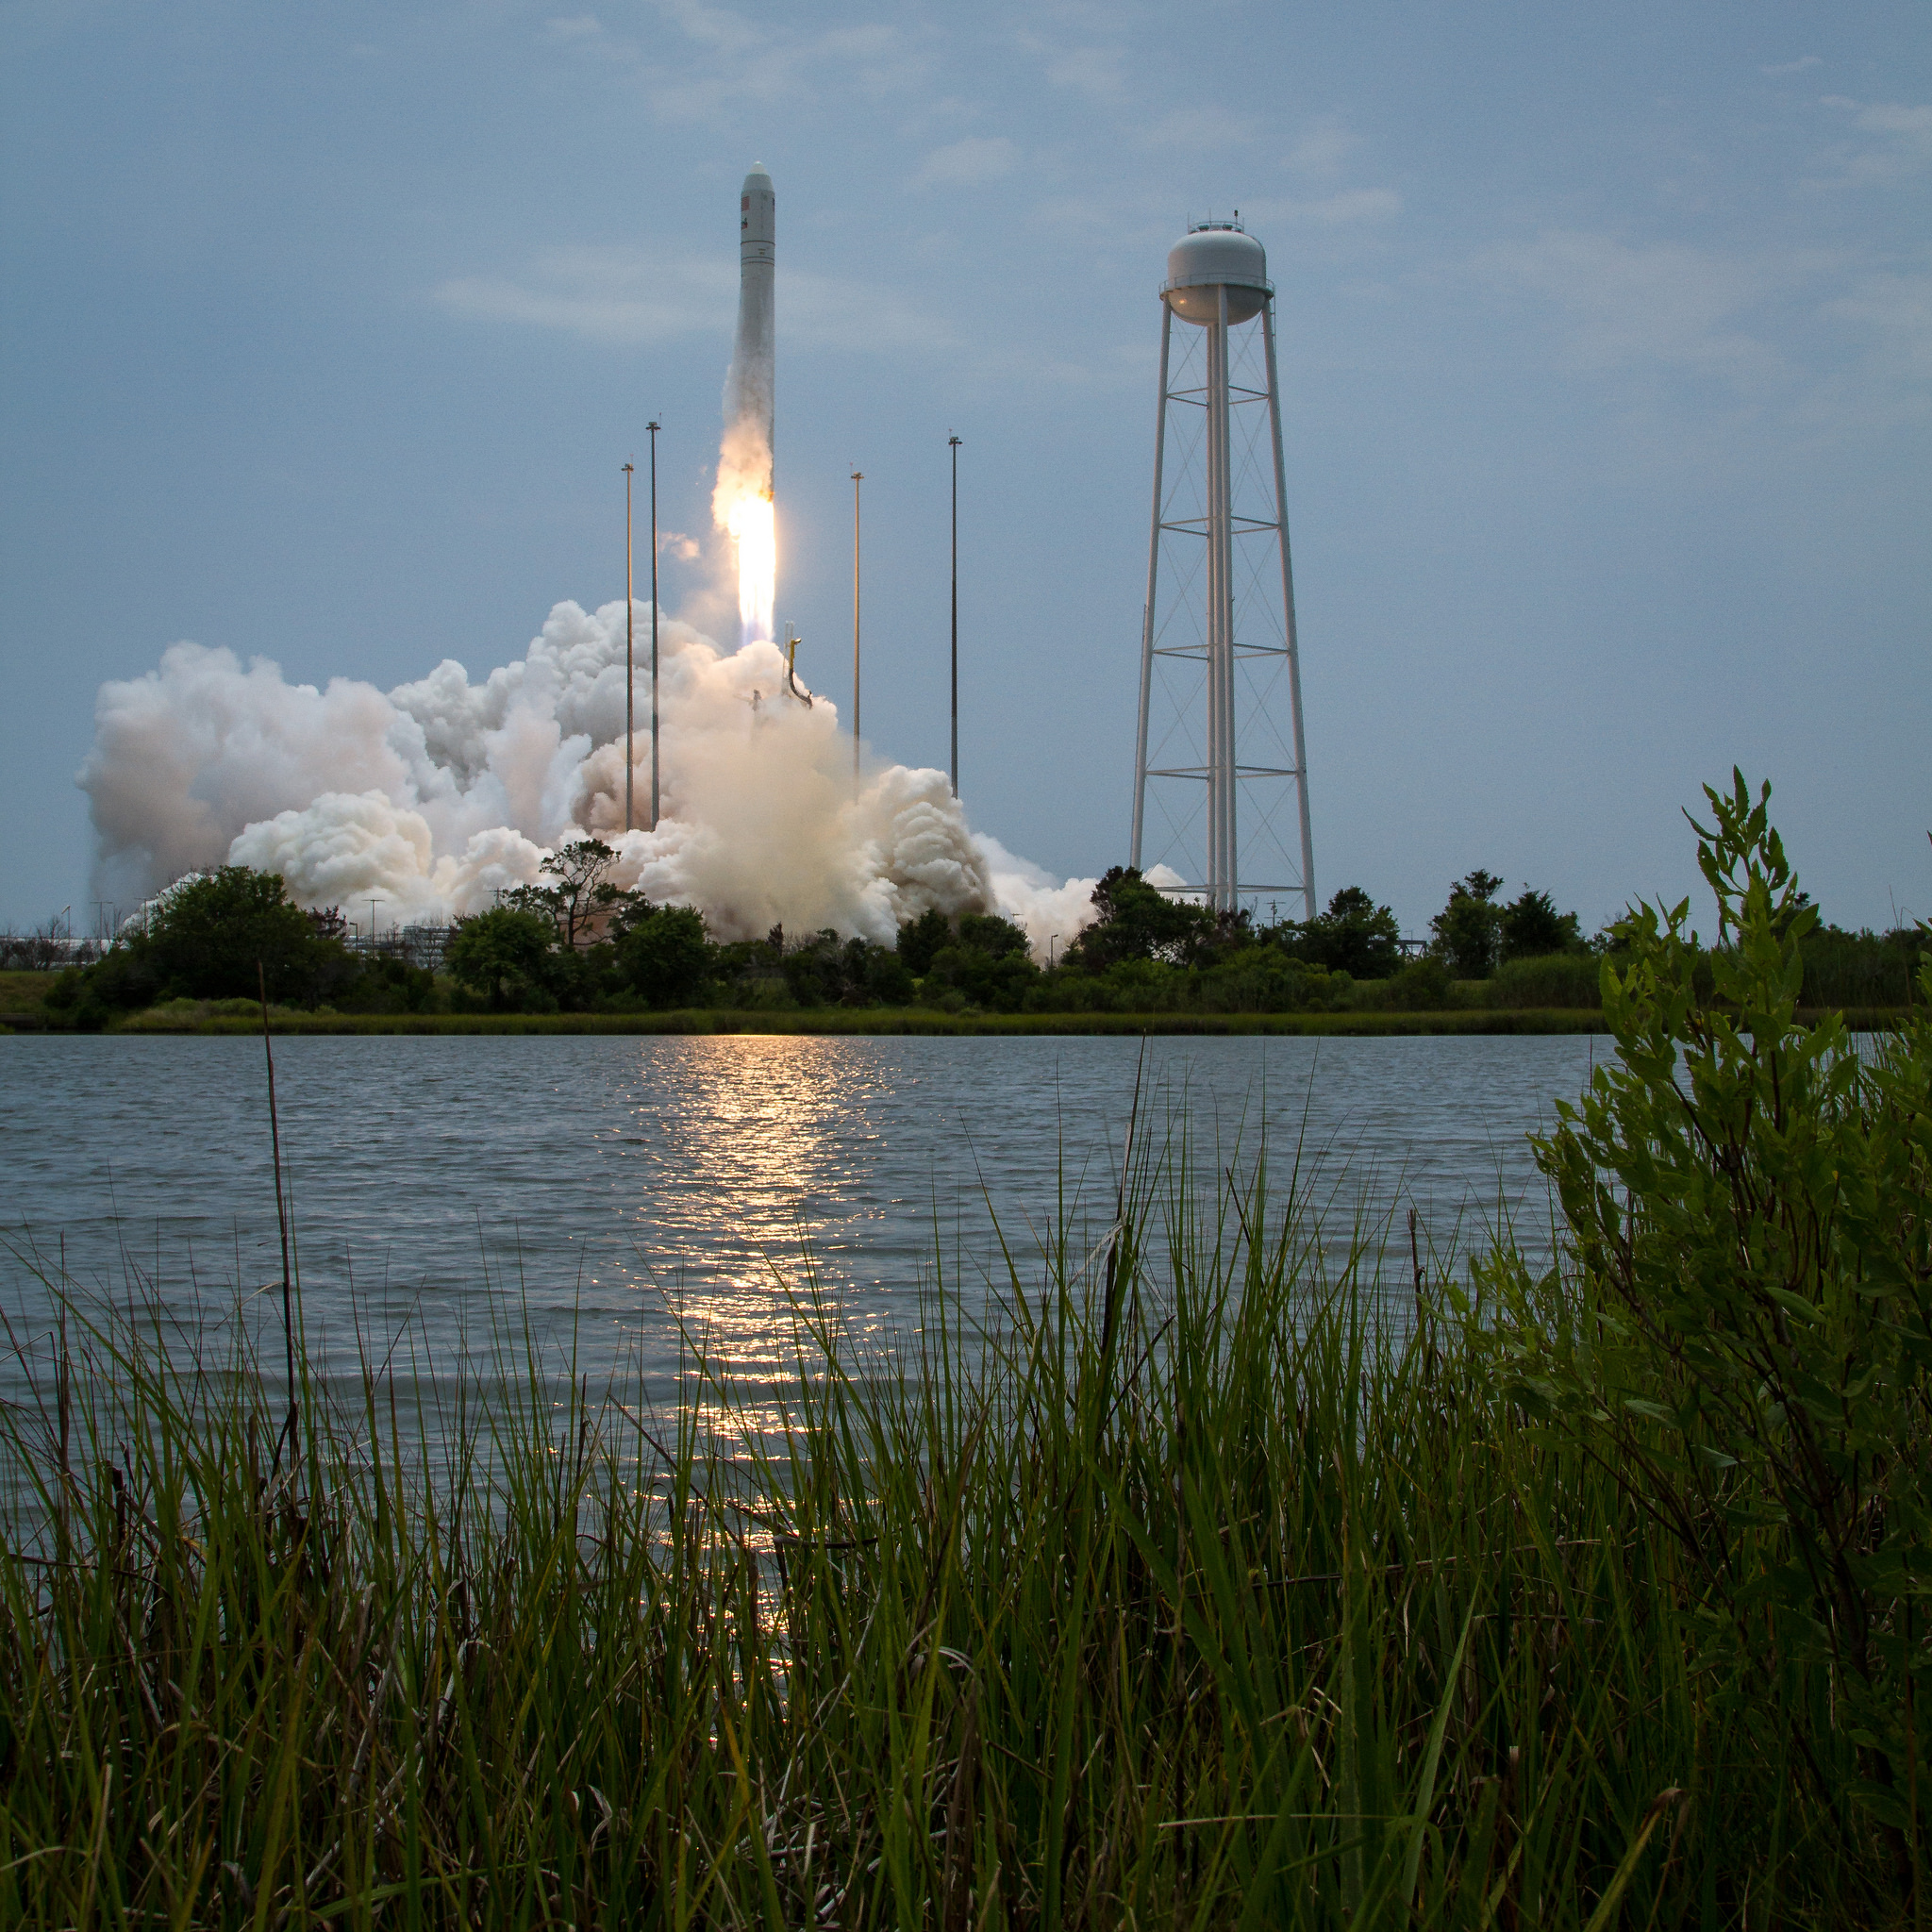 Orbital Sciences Corporation Antares Rocket Mission